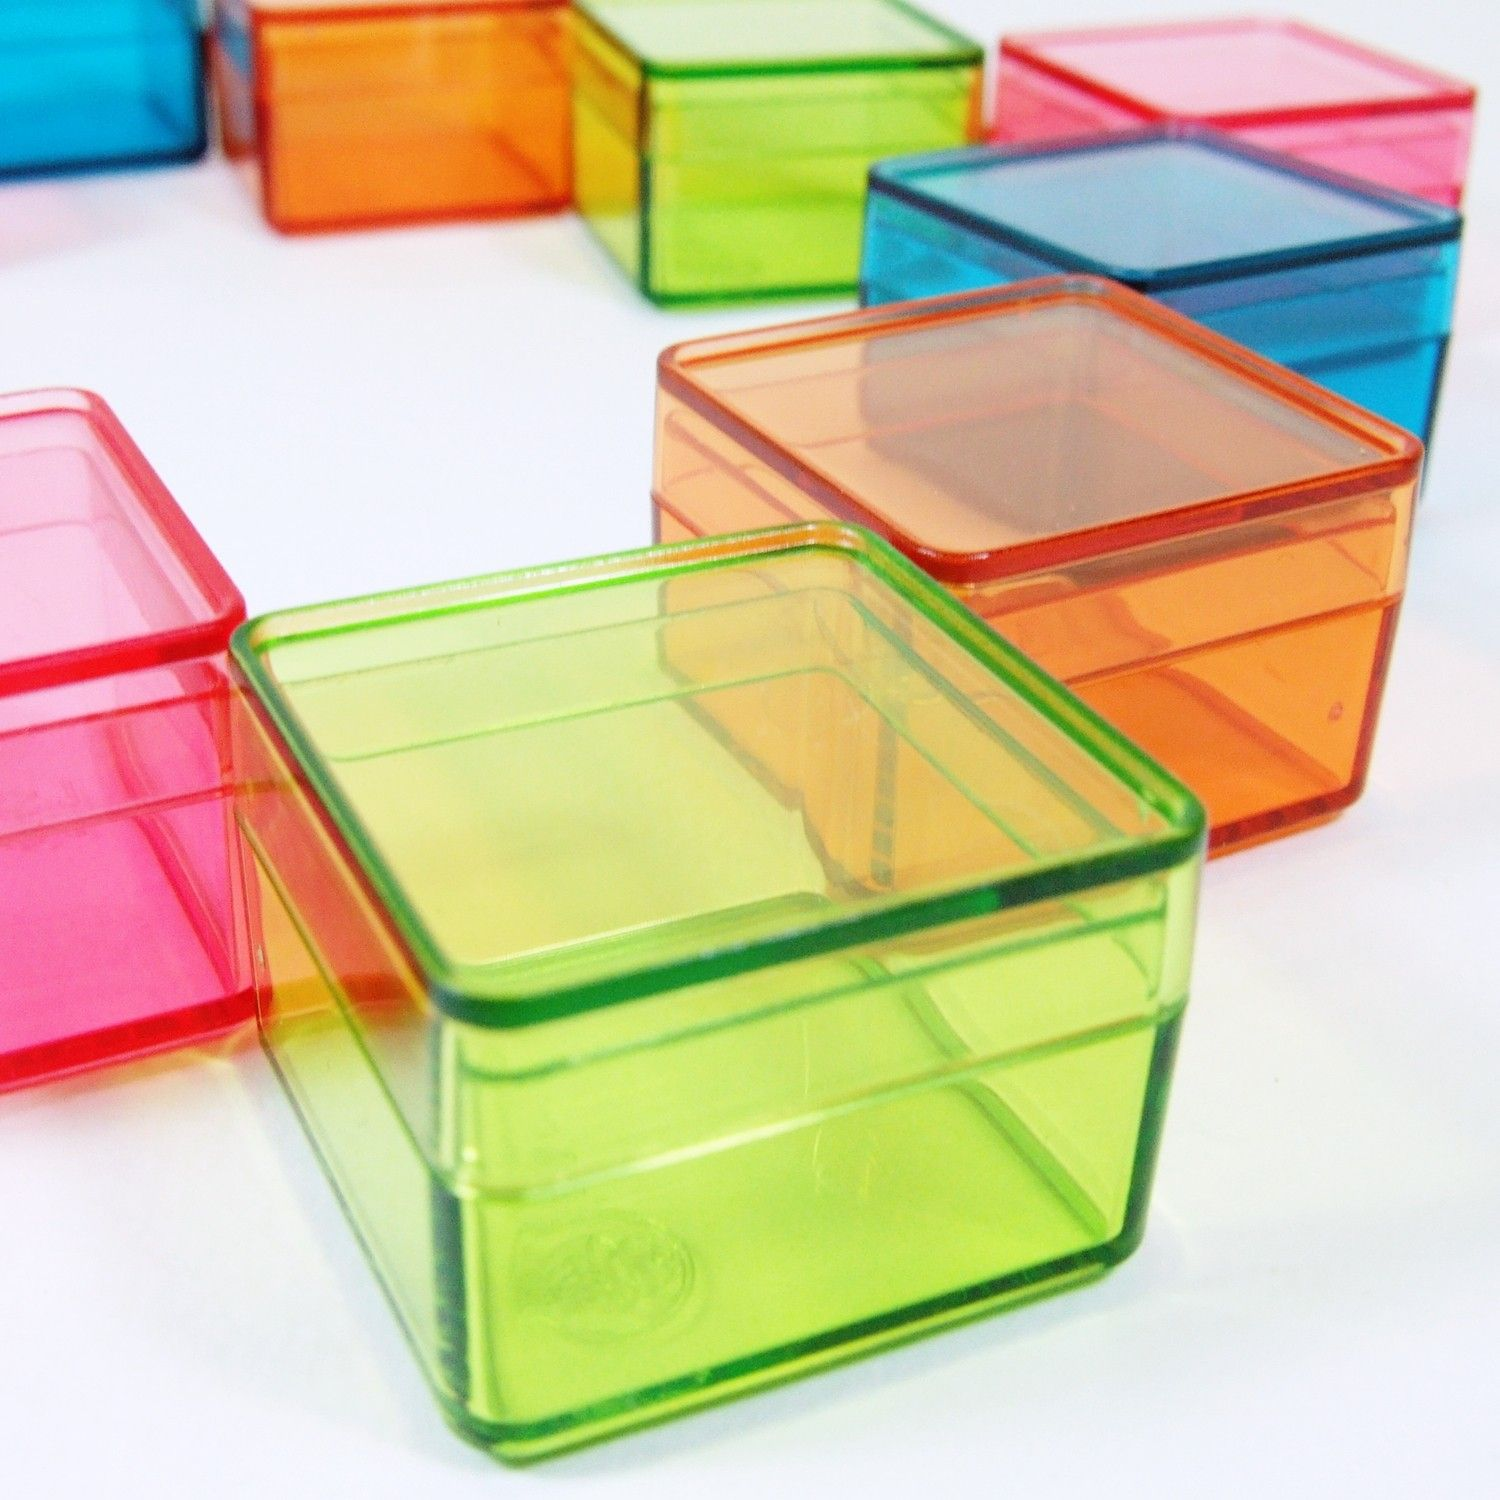 Tiny Color Square Plastic Boxes 12pcs Small Storage Containers